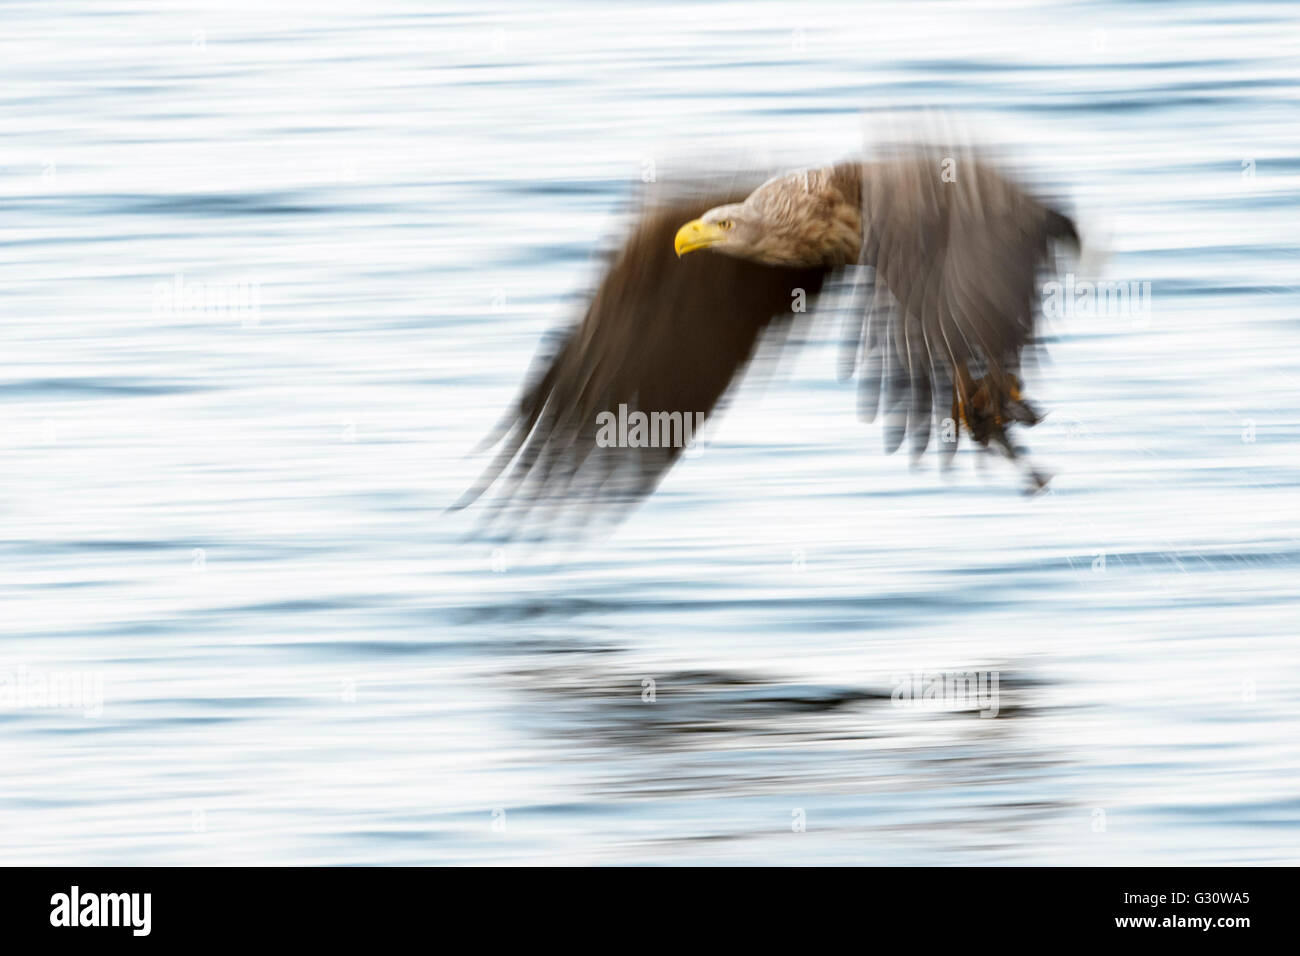 White-tailed Sea Eagle (Haliaeetus albicilla) catching fish, with motion blur, Norway - Stock Image